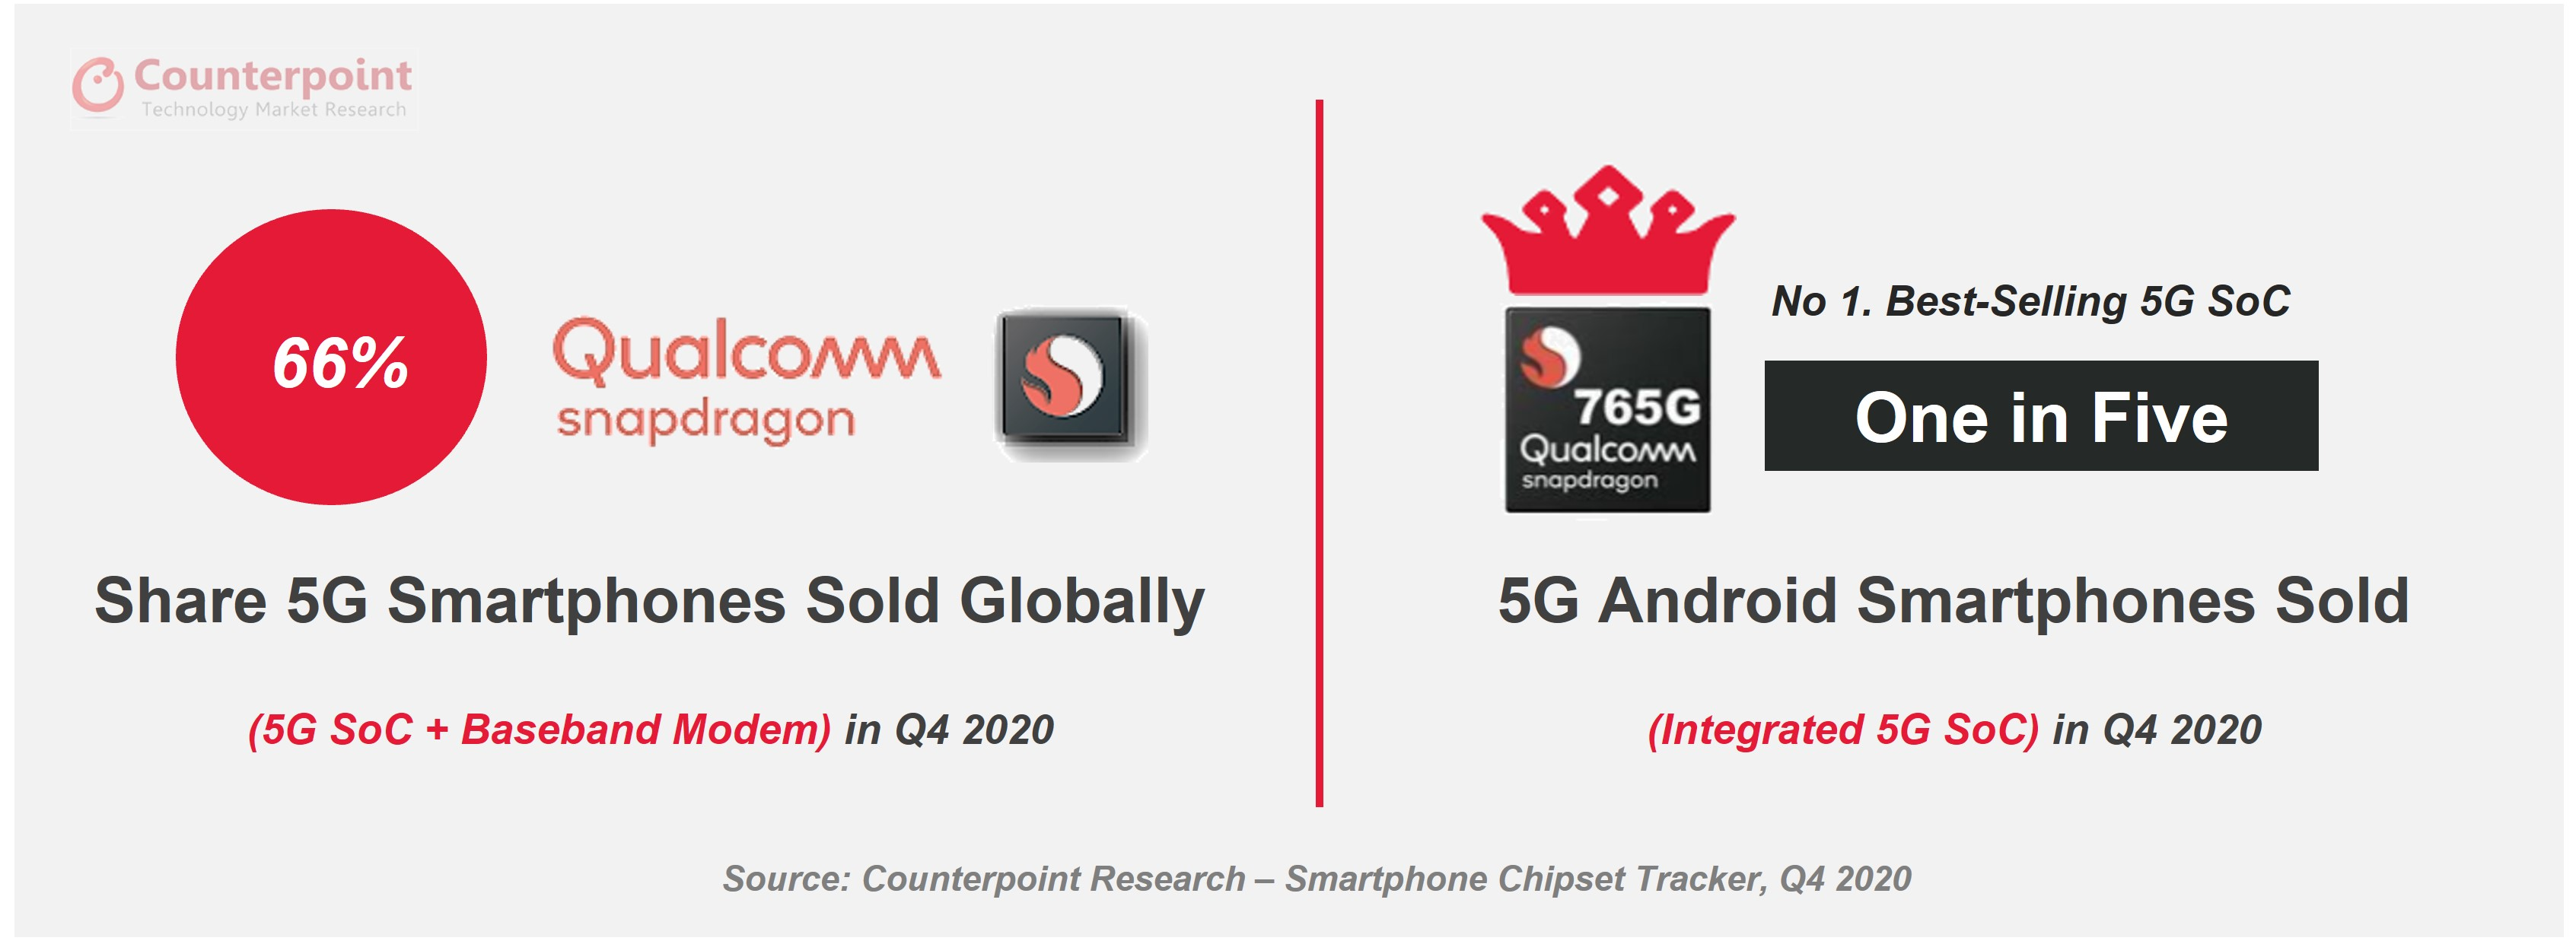 counterpoint qualcomm snapdragon 765G 5g share